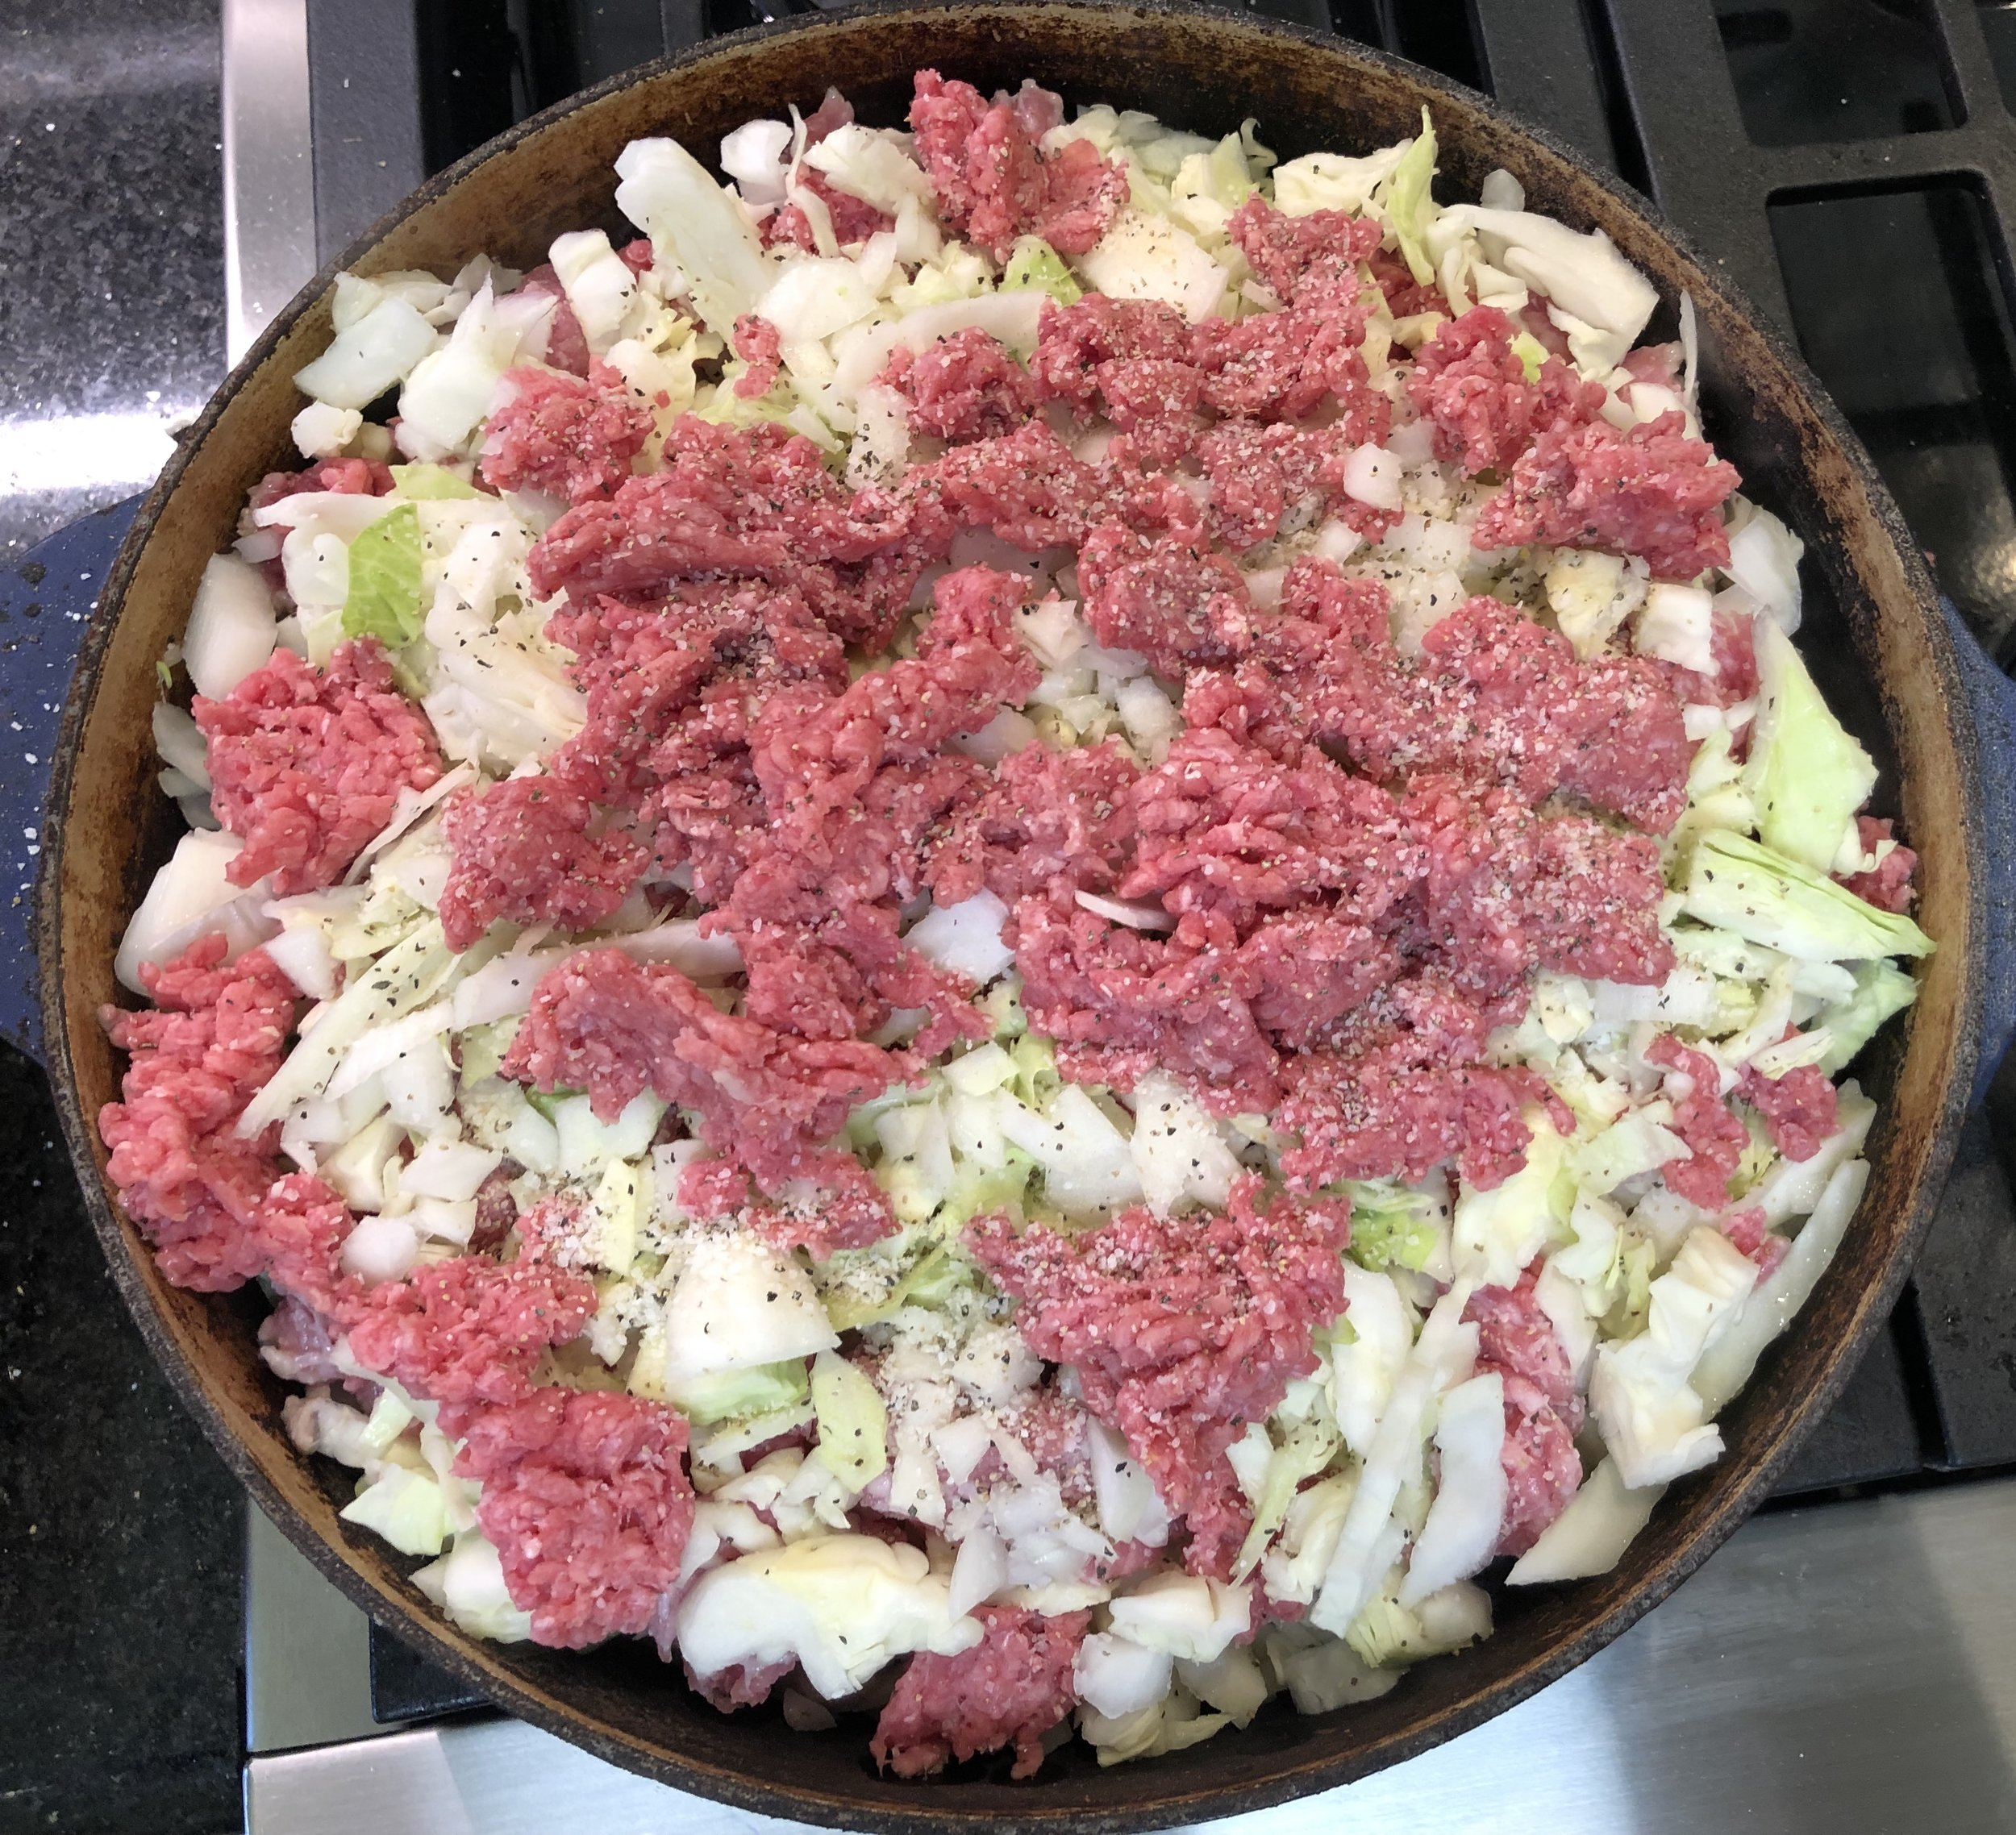 Layering the cabbage, onion, and meat to slowly braise.